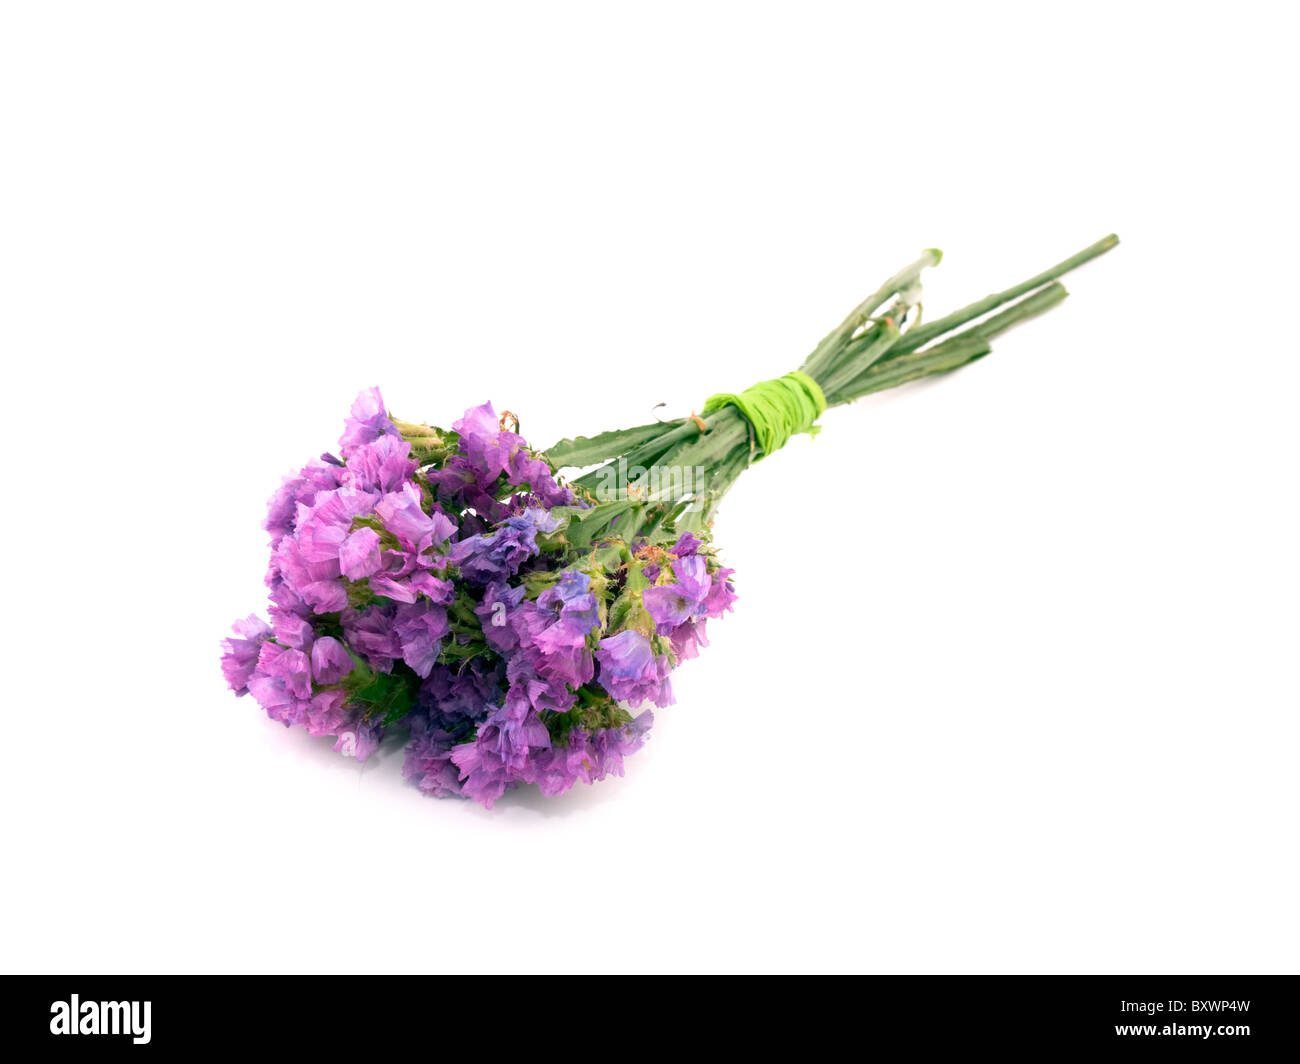 Statice flower stock photos statice flower stock images alamy small bouquet of pink statice flowers on white background stock image mightylinksfo